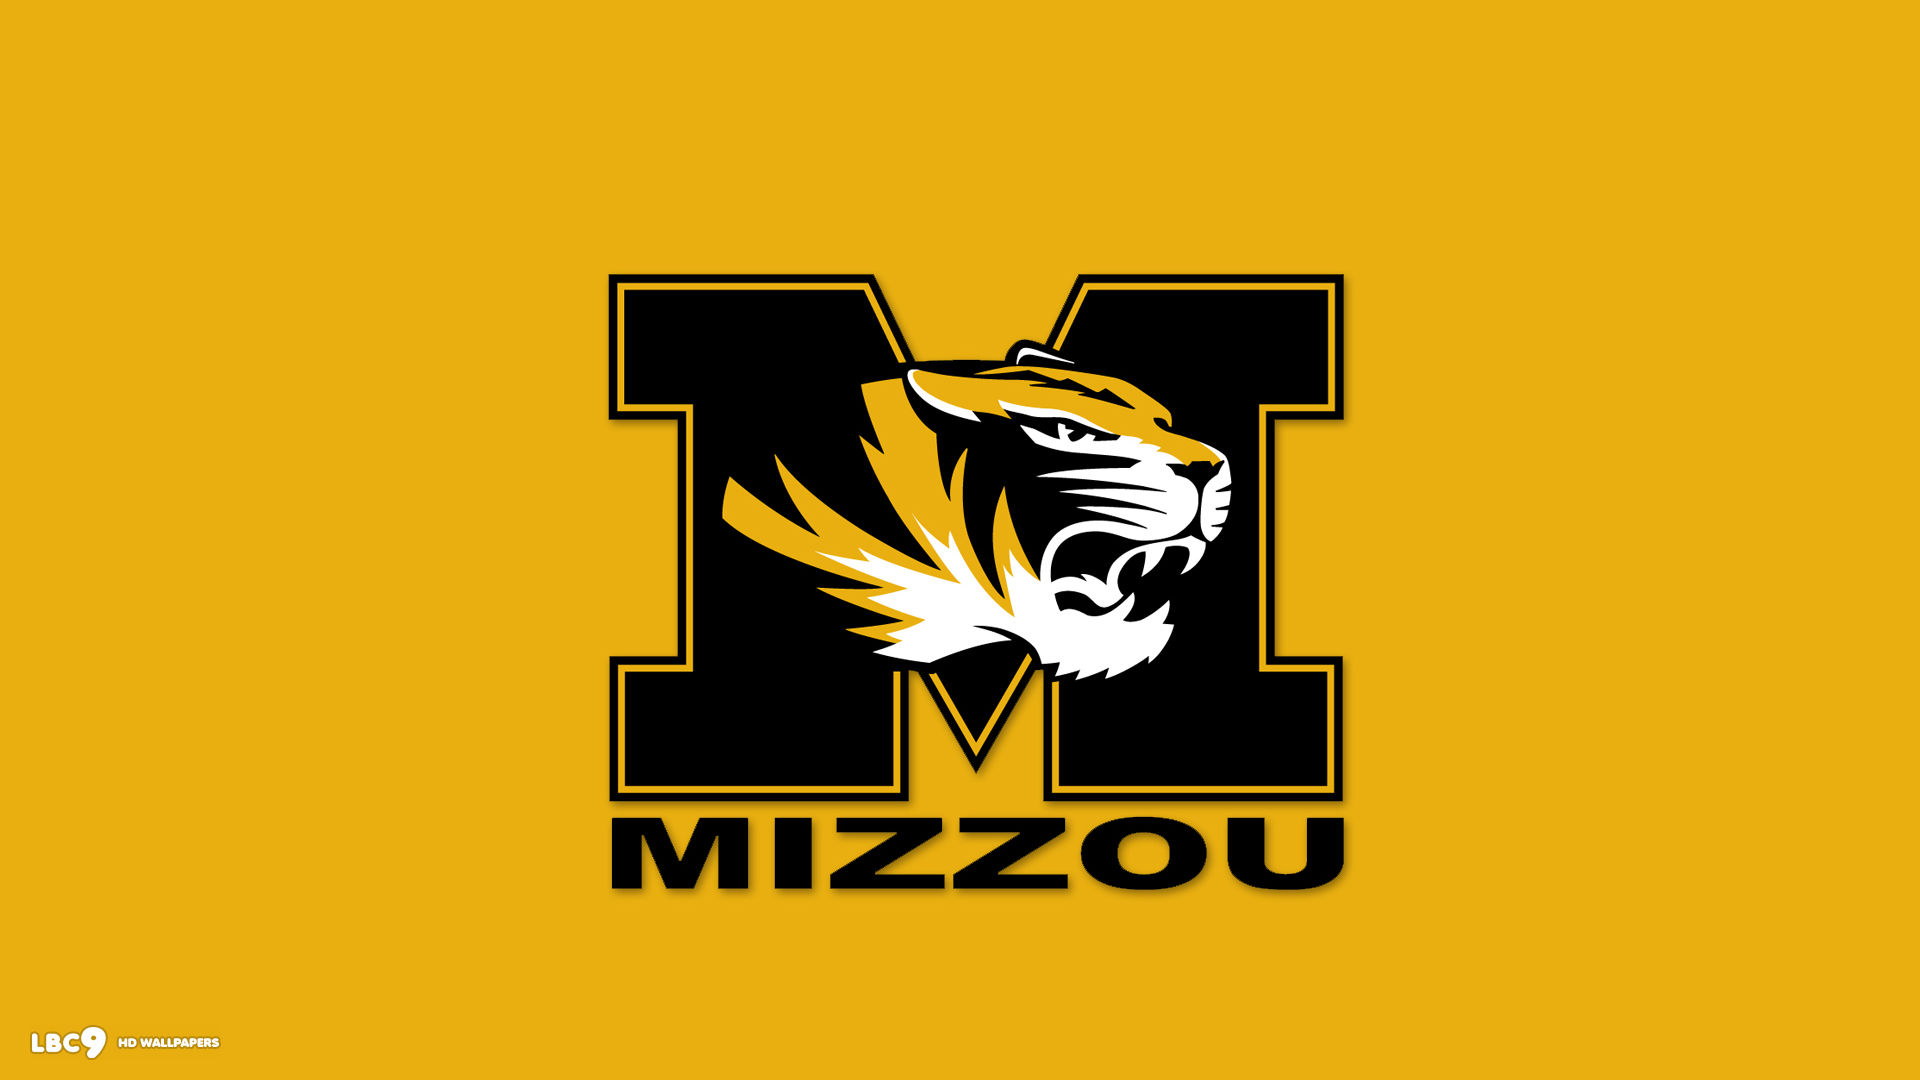 Best 50 Mizzou Wallpaper on HipWallpaper Mizzou Engineering 1920x1080